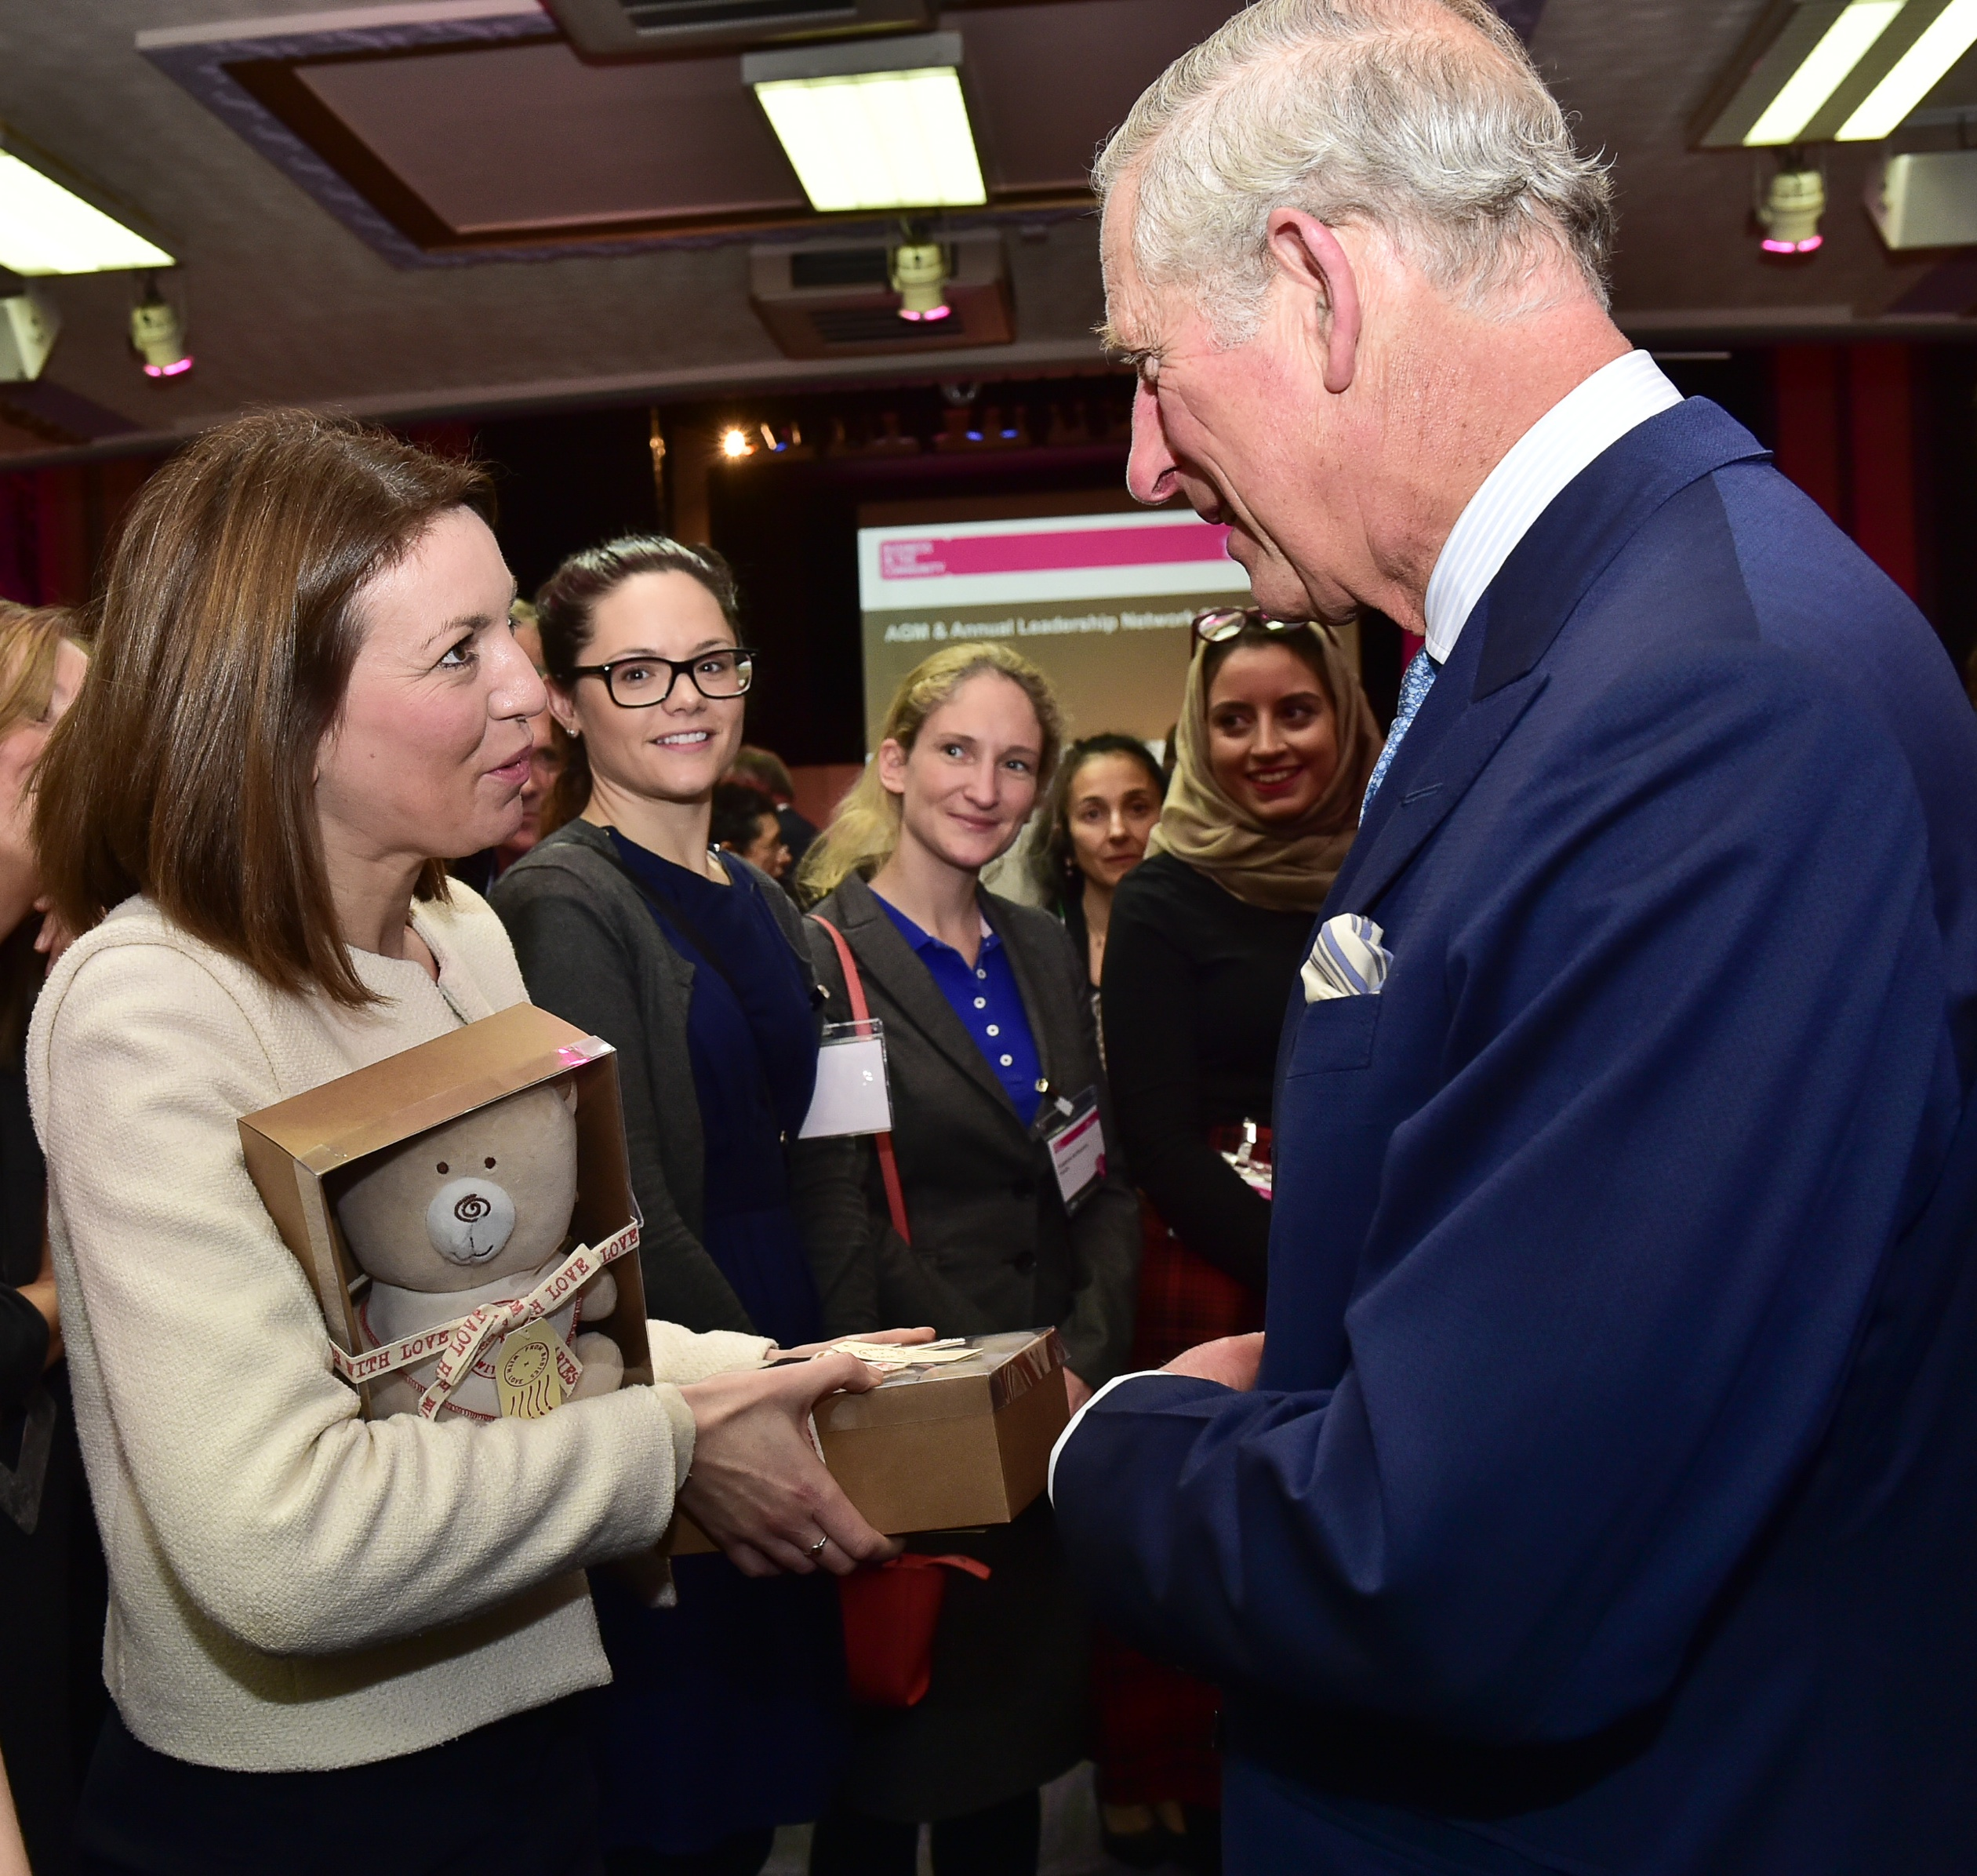 From Babies with Love Bear to HRH the Prince of Wales